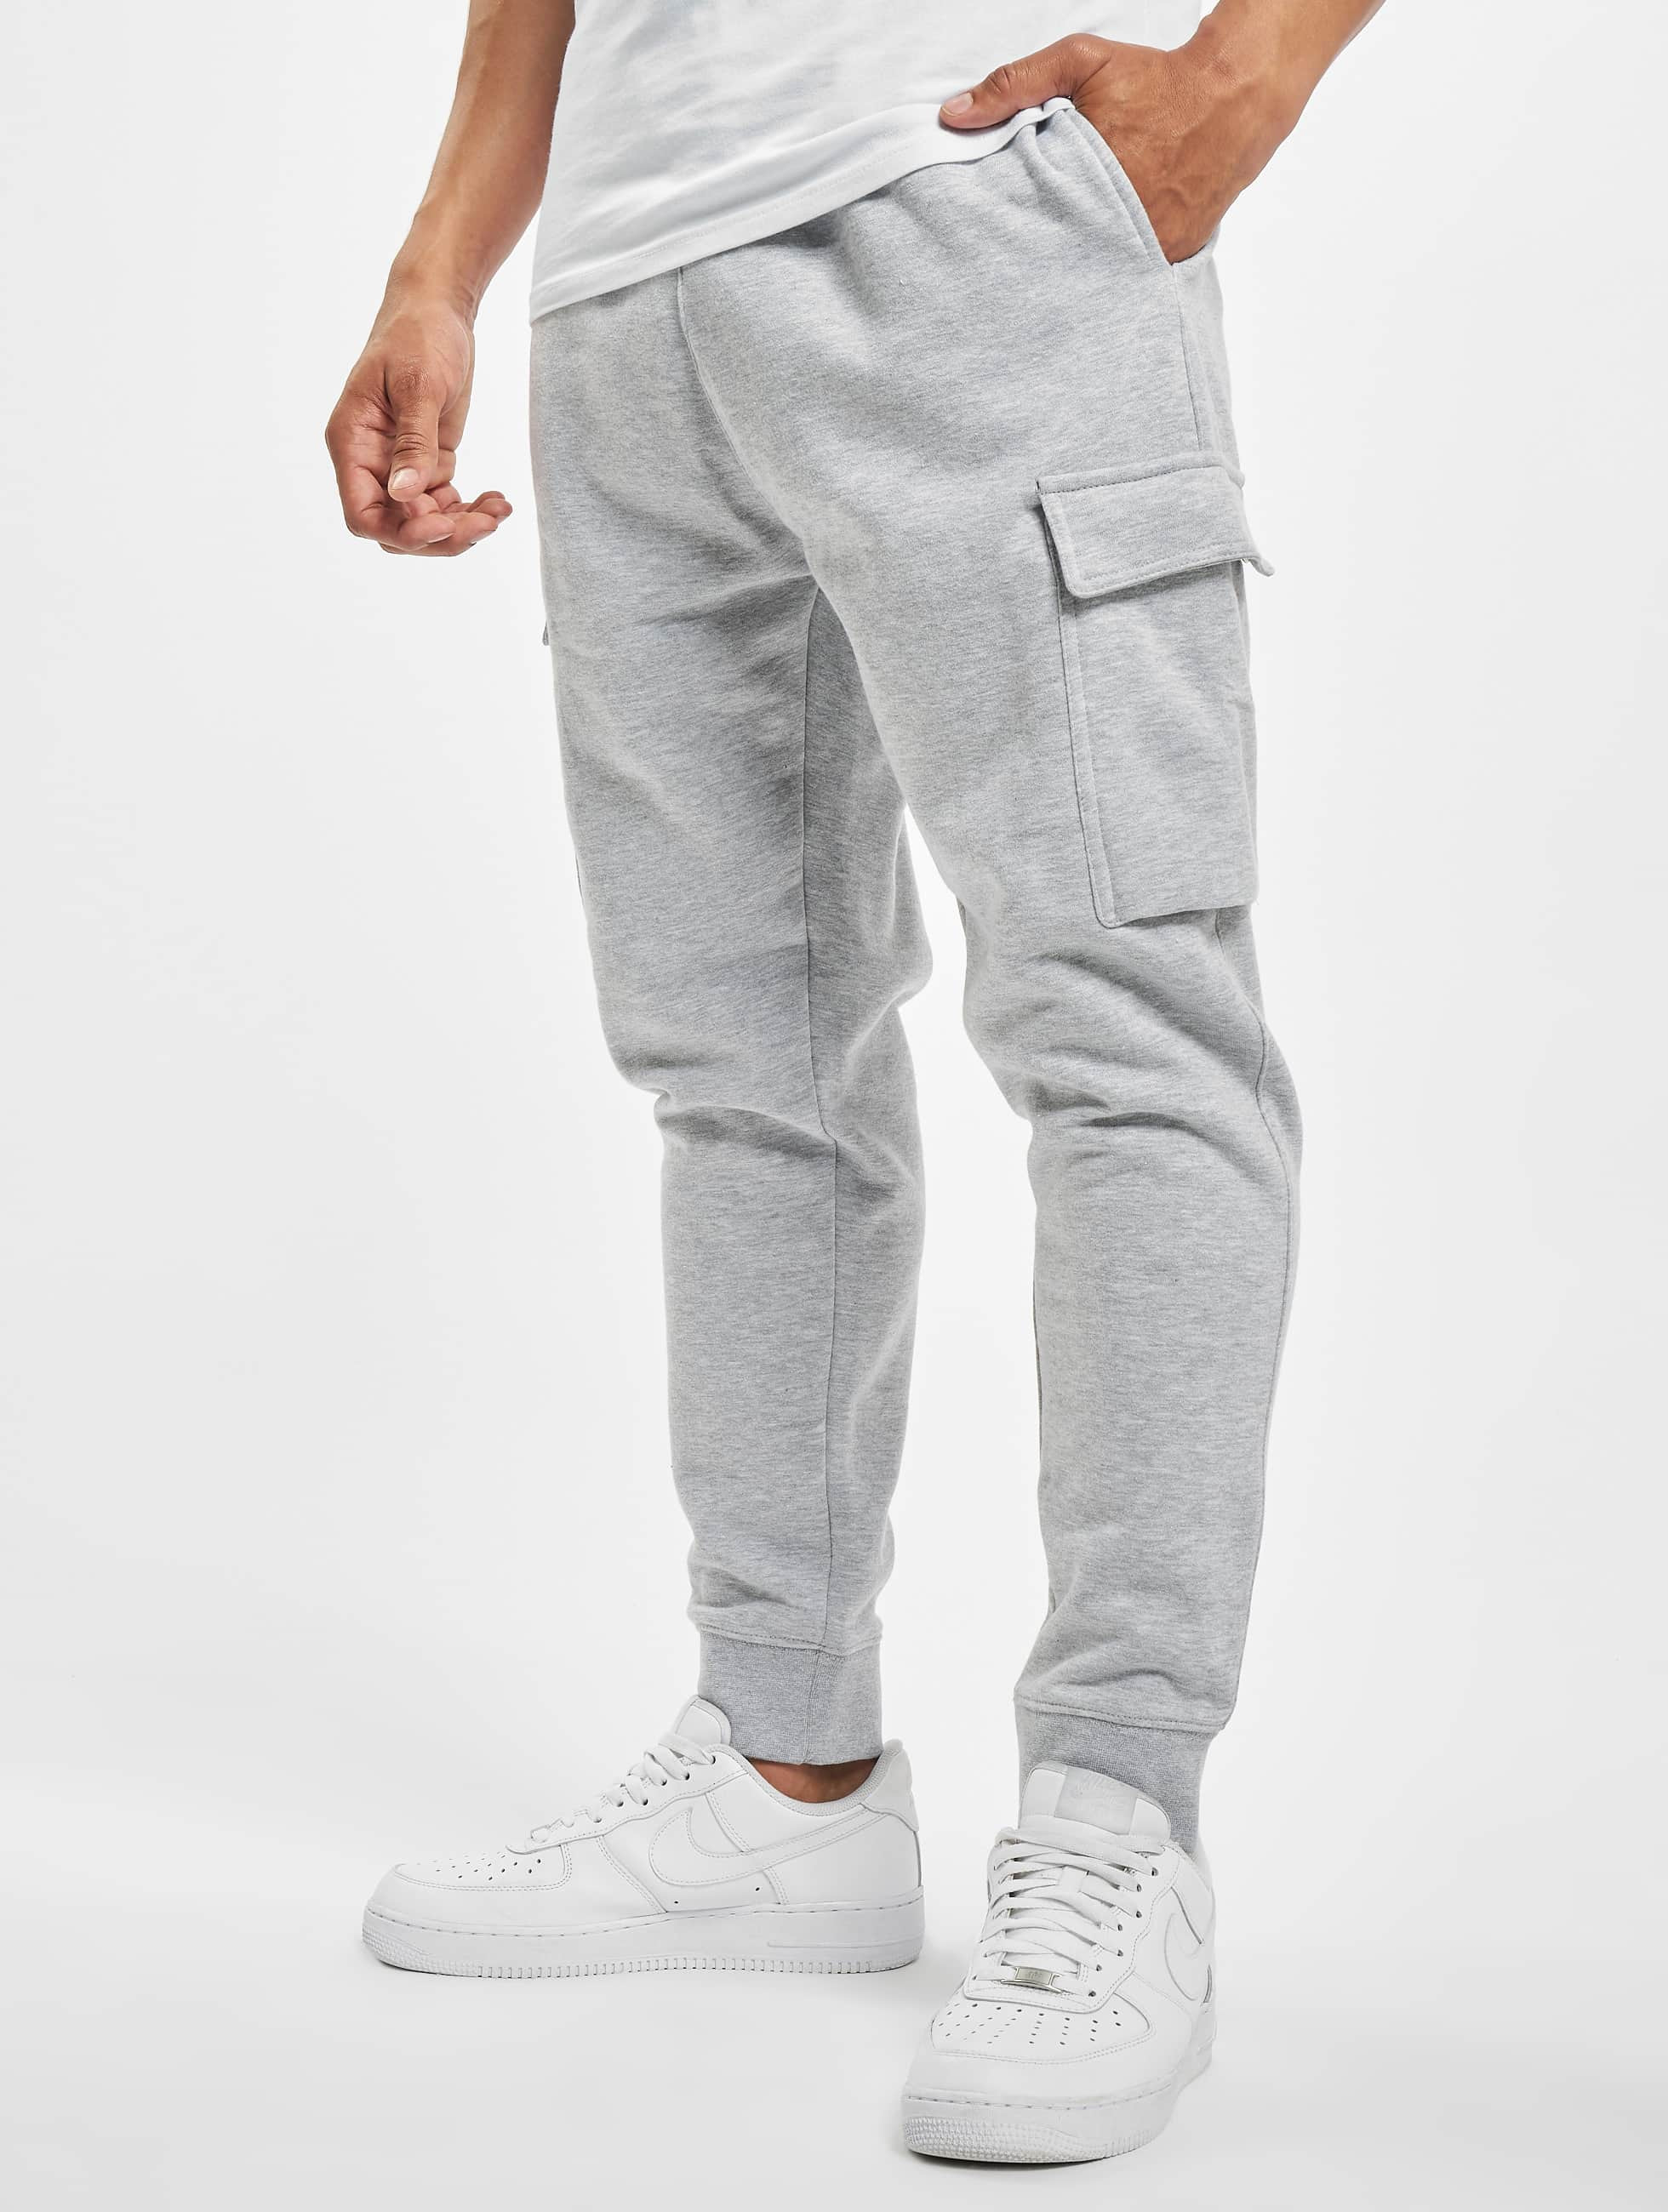 DEF / Sweat Pant Denni in grey 2XL